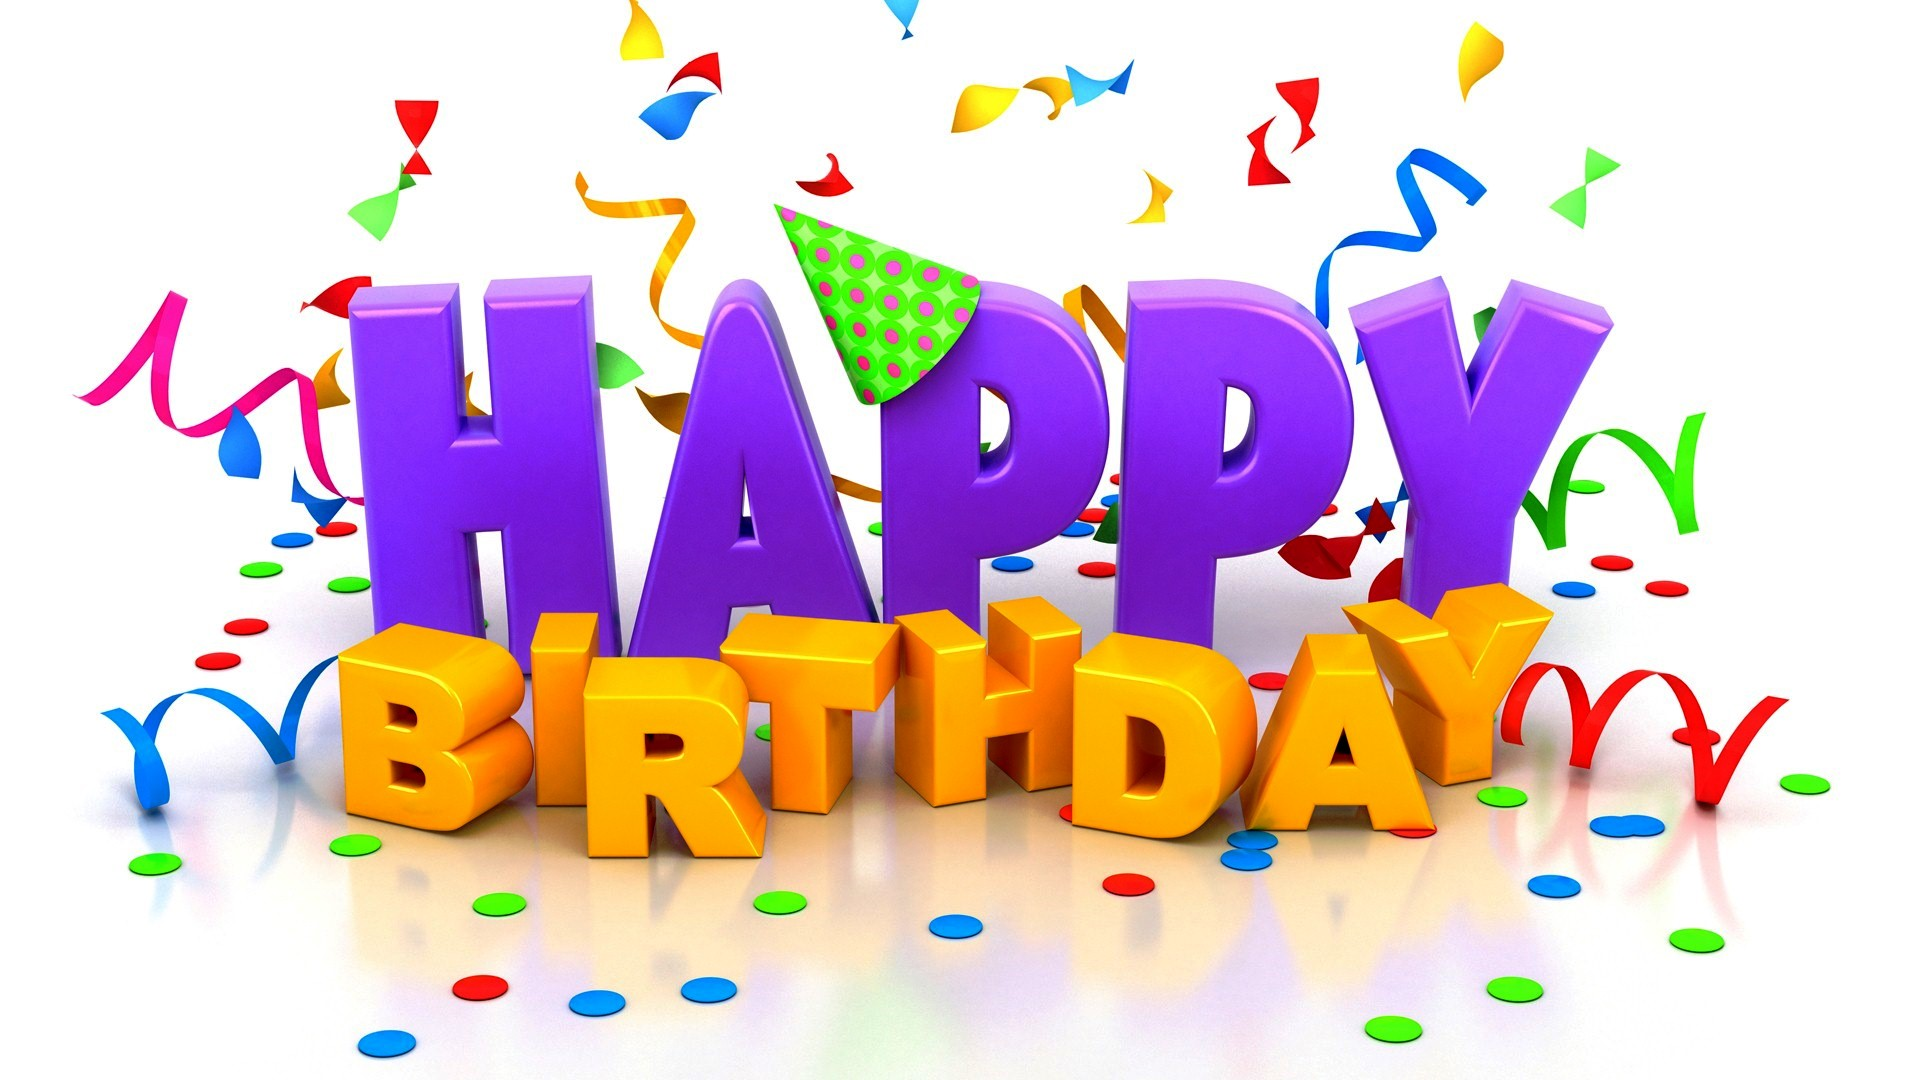 birthday background wallpaper ; Happy-Birthday-High-Quality-Desktop-Background-Images-84386336